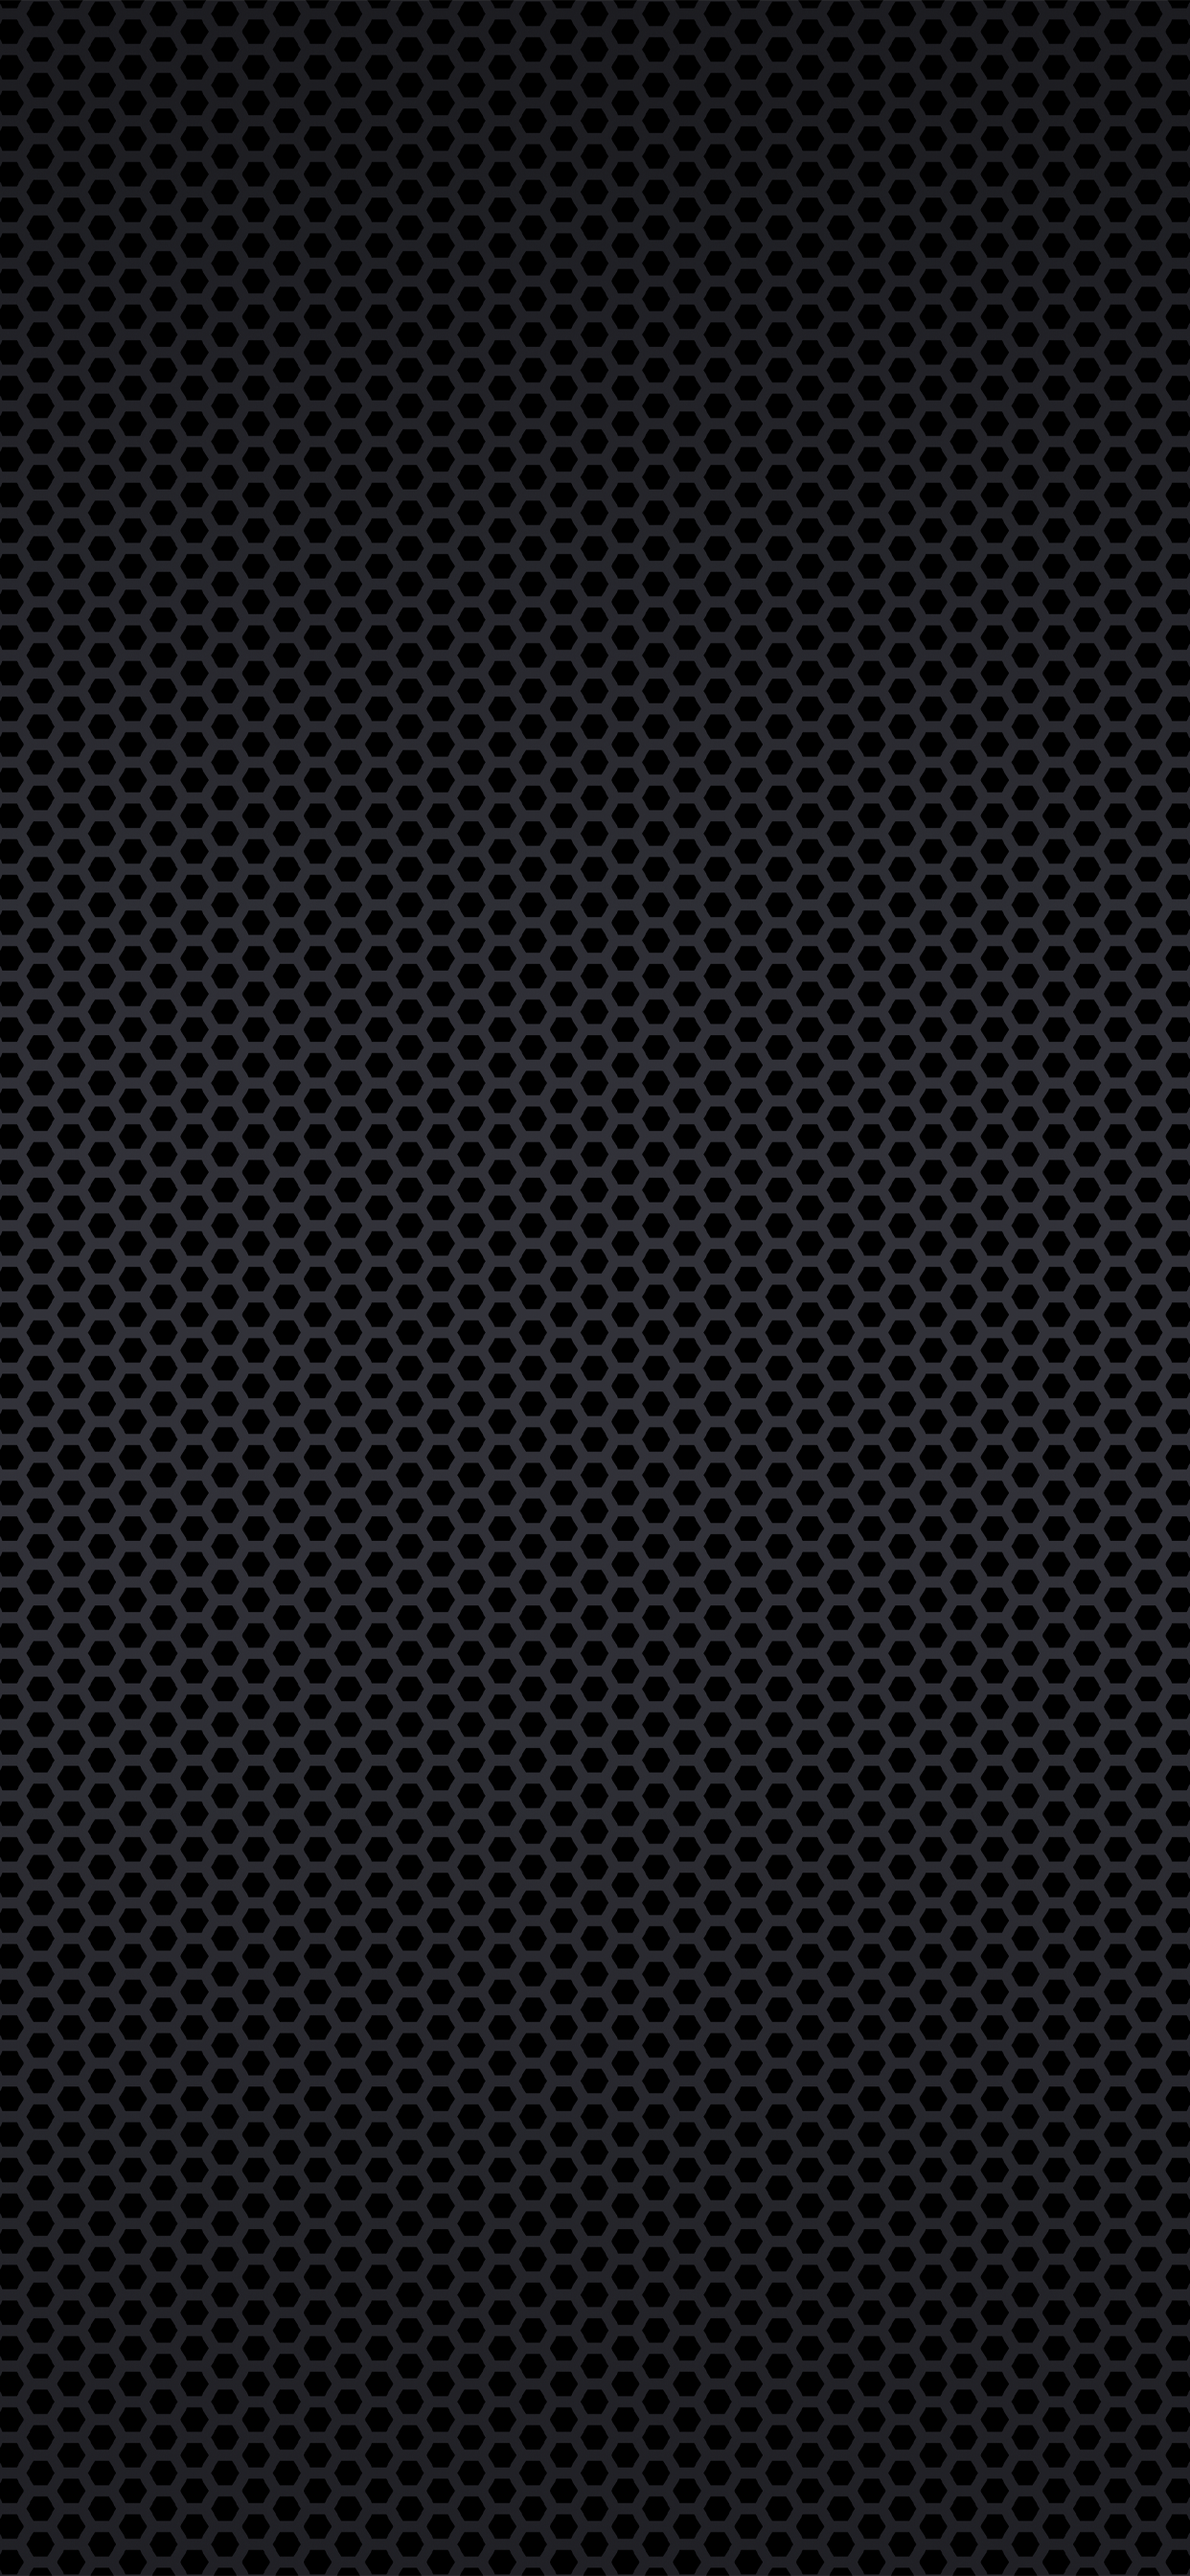 Matrix dark pattern iphone wallpaper arthur schrinemacher